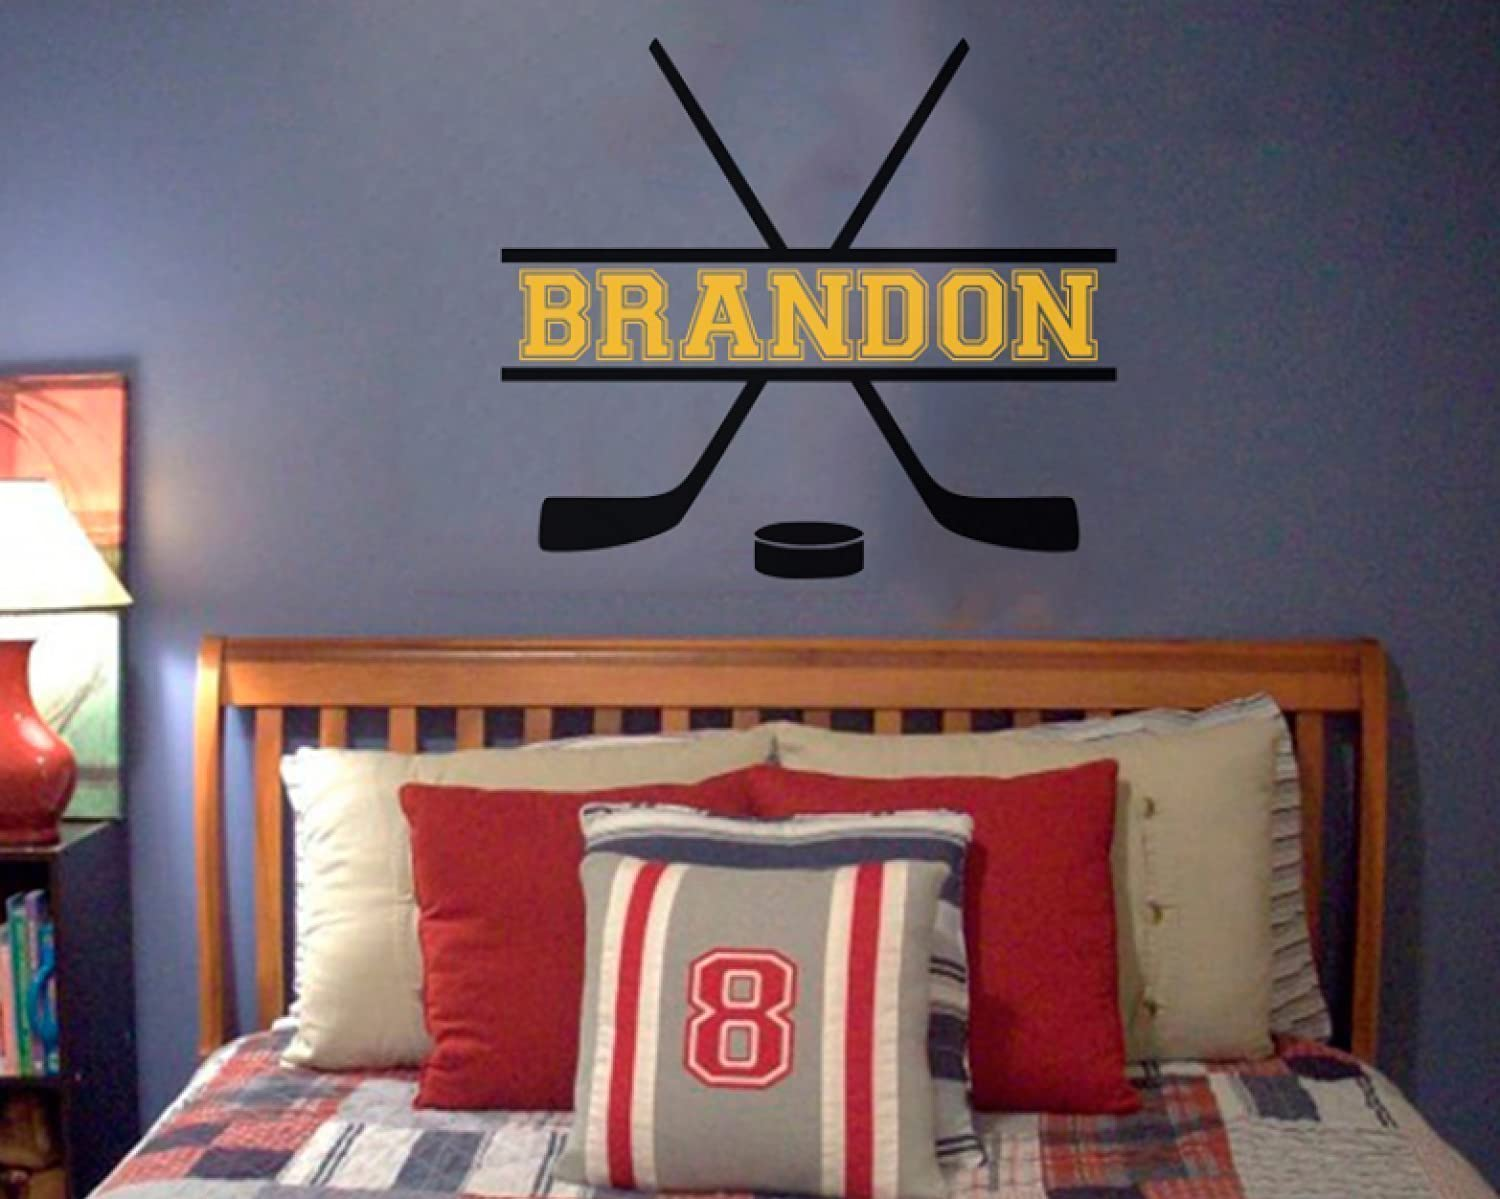 "Custom Name added to Hockey Vinyl Wall Decal - Hockey theme - Personalized Removable sticker perfect for above bed - Sports room 25"" wide x 22"" tall"